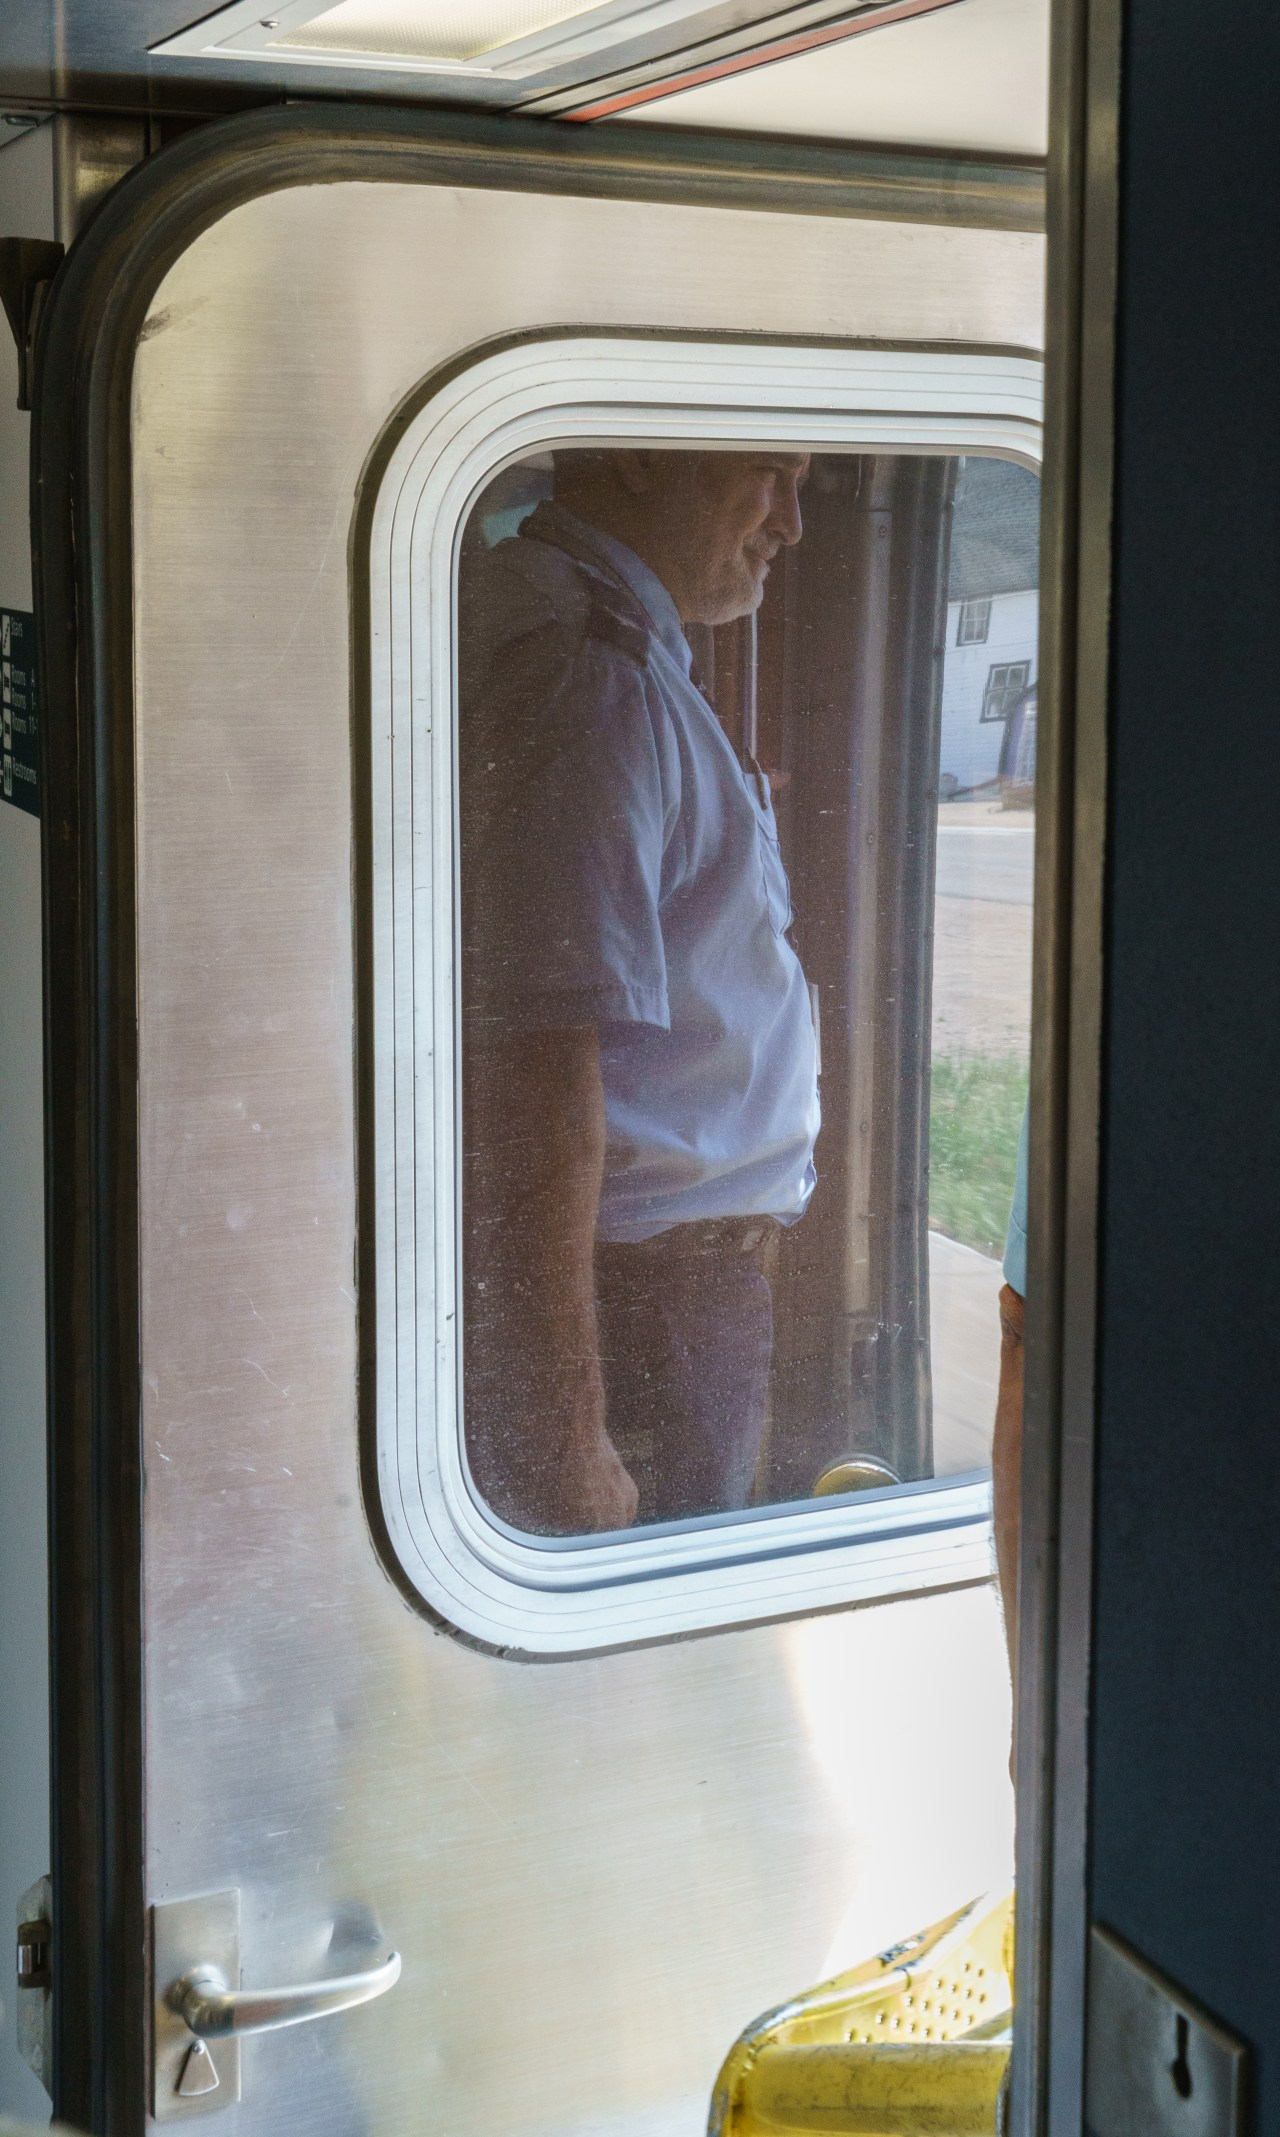 Sleeping Car Attendant (Dennis) at the door as we pull into a station.